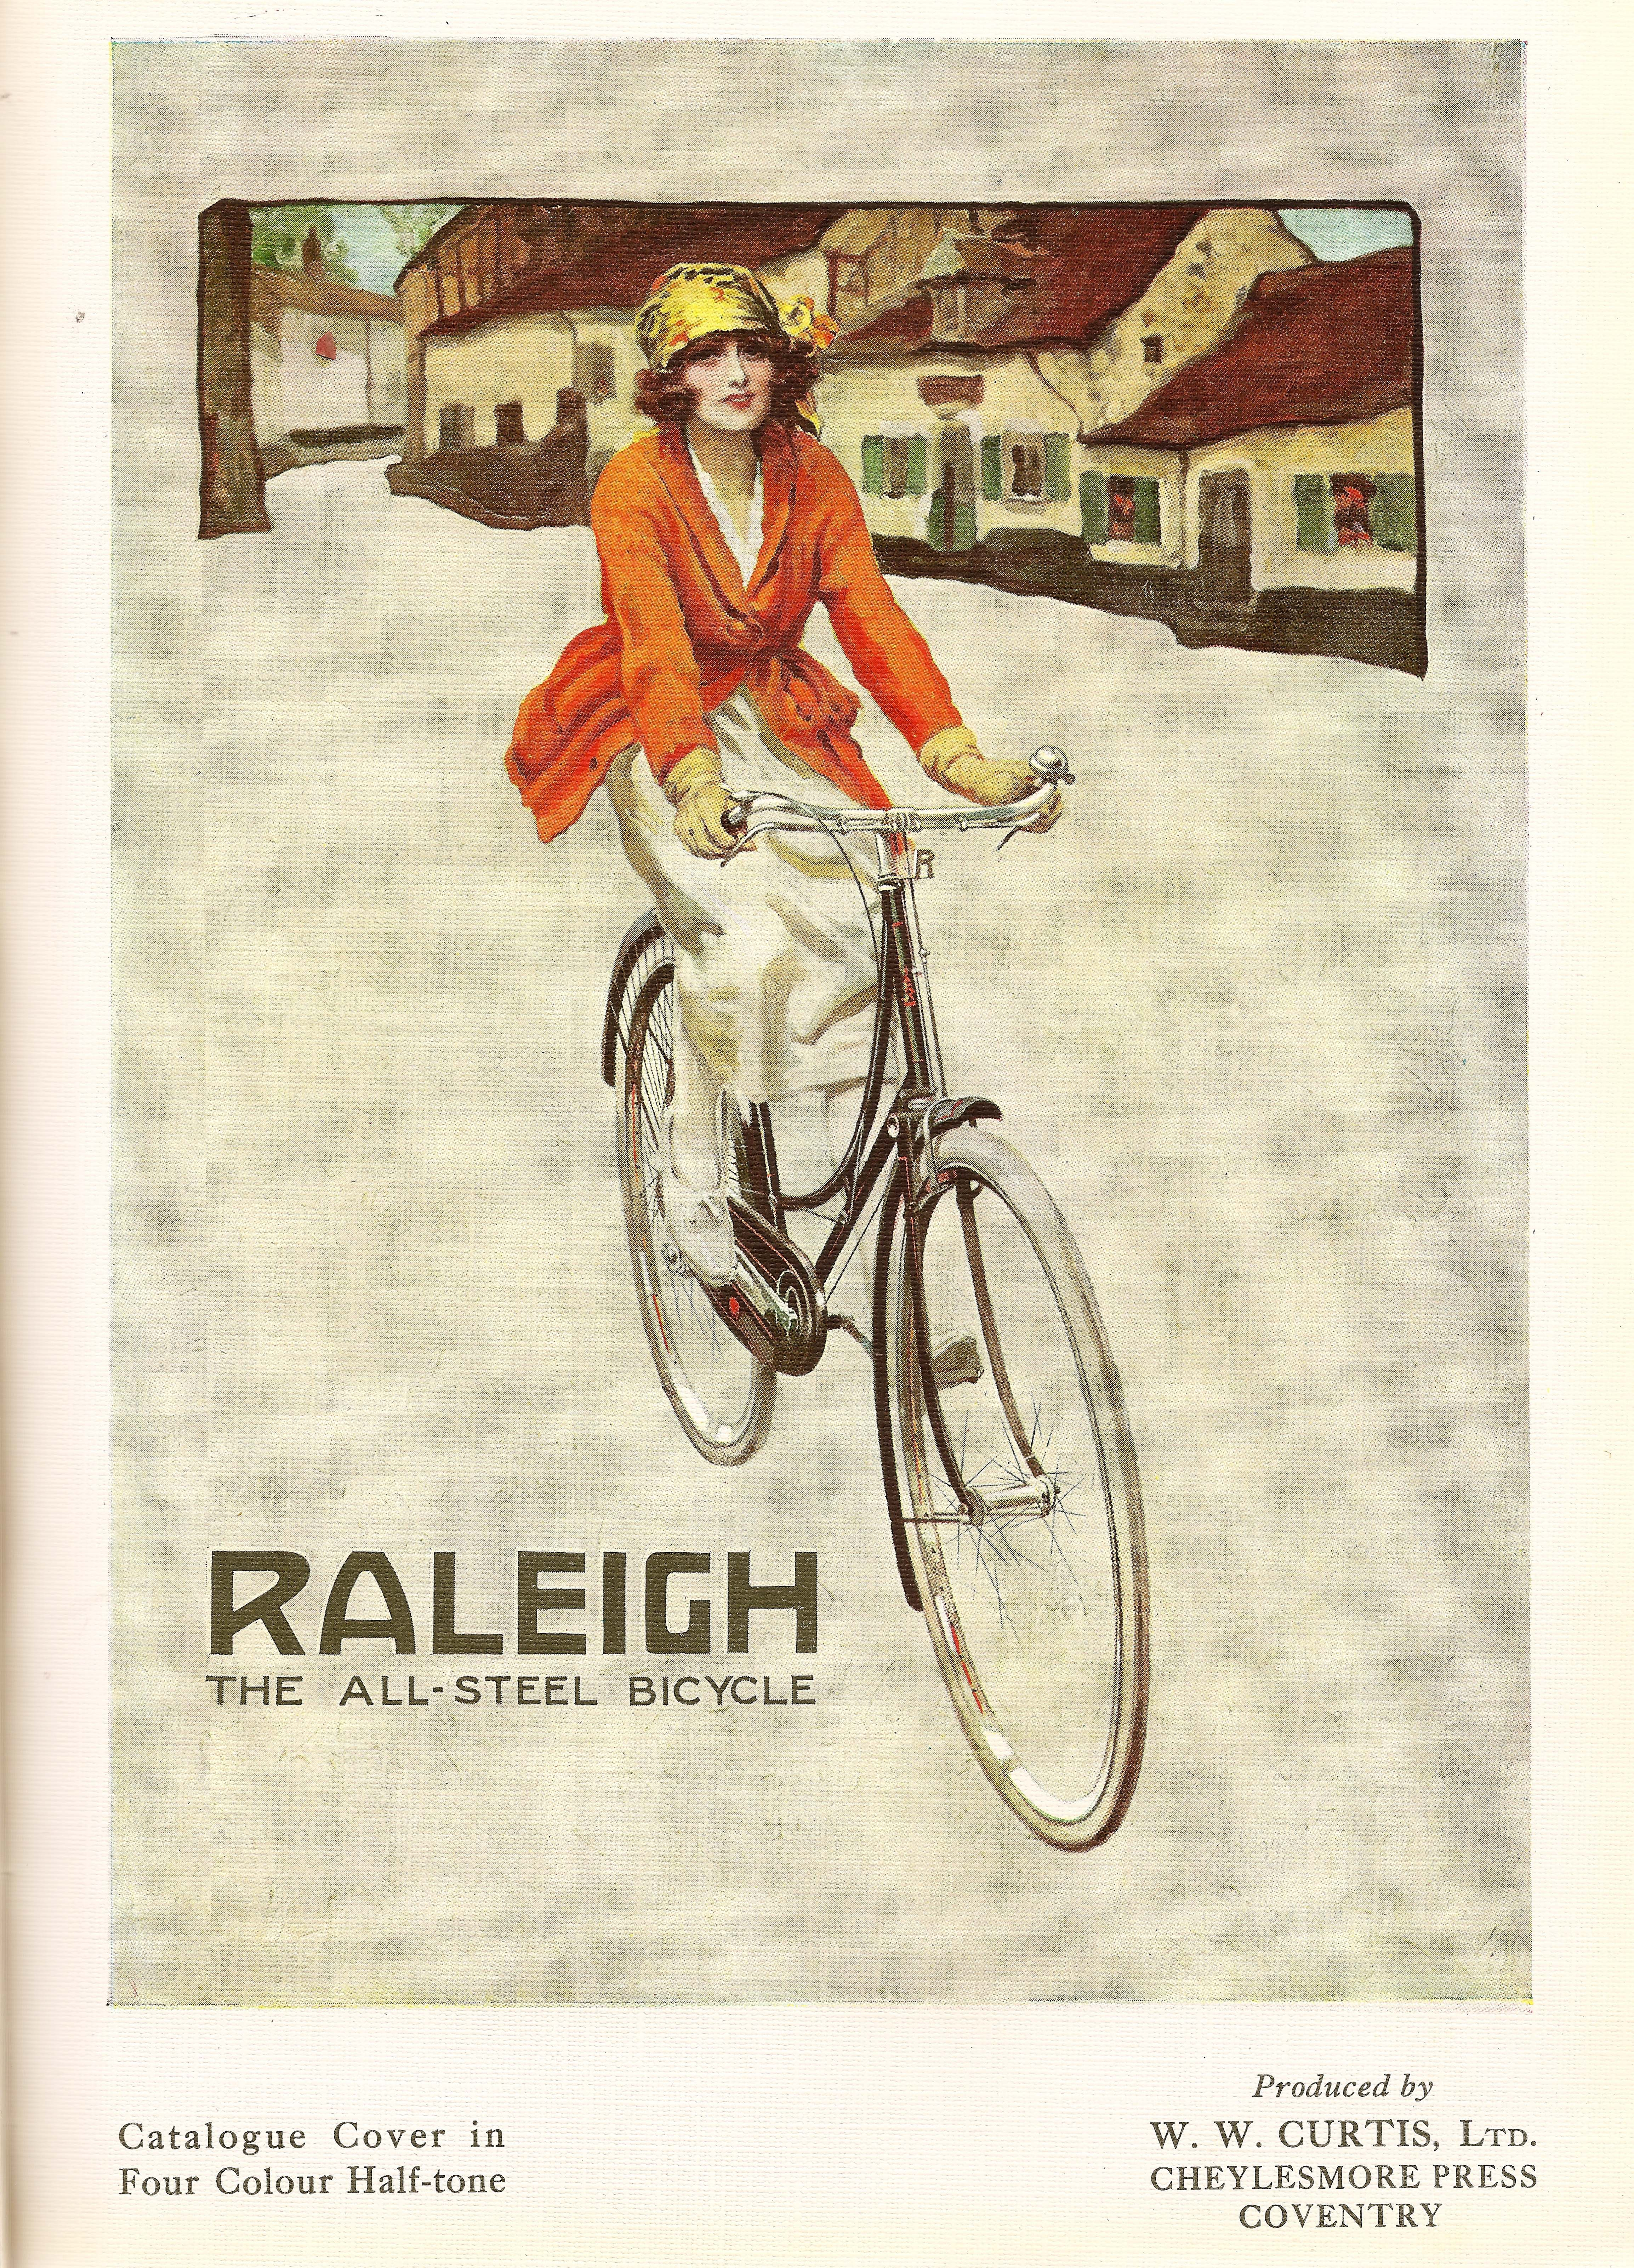 Raleigh catalogue cover from 1922.